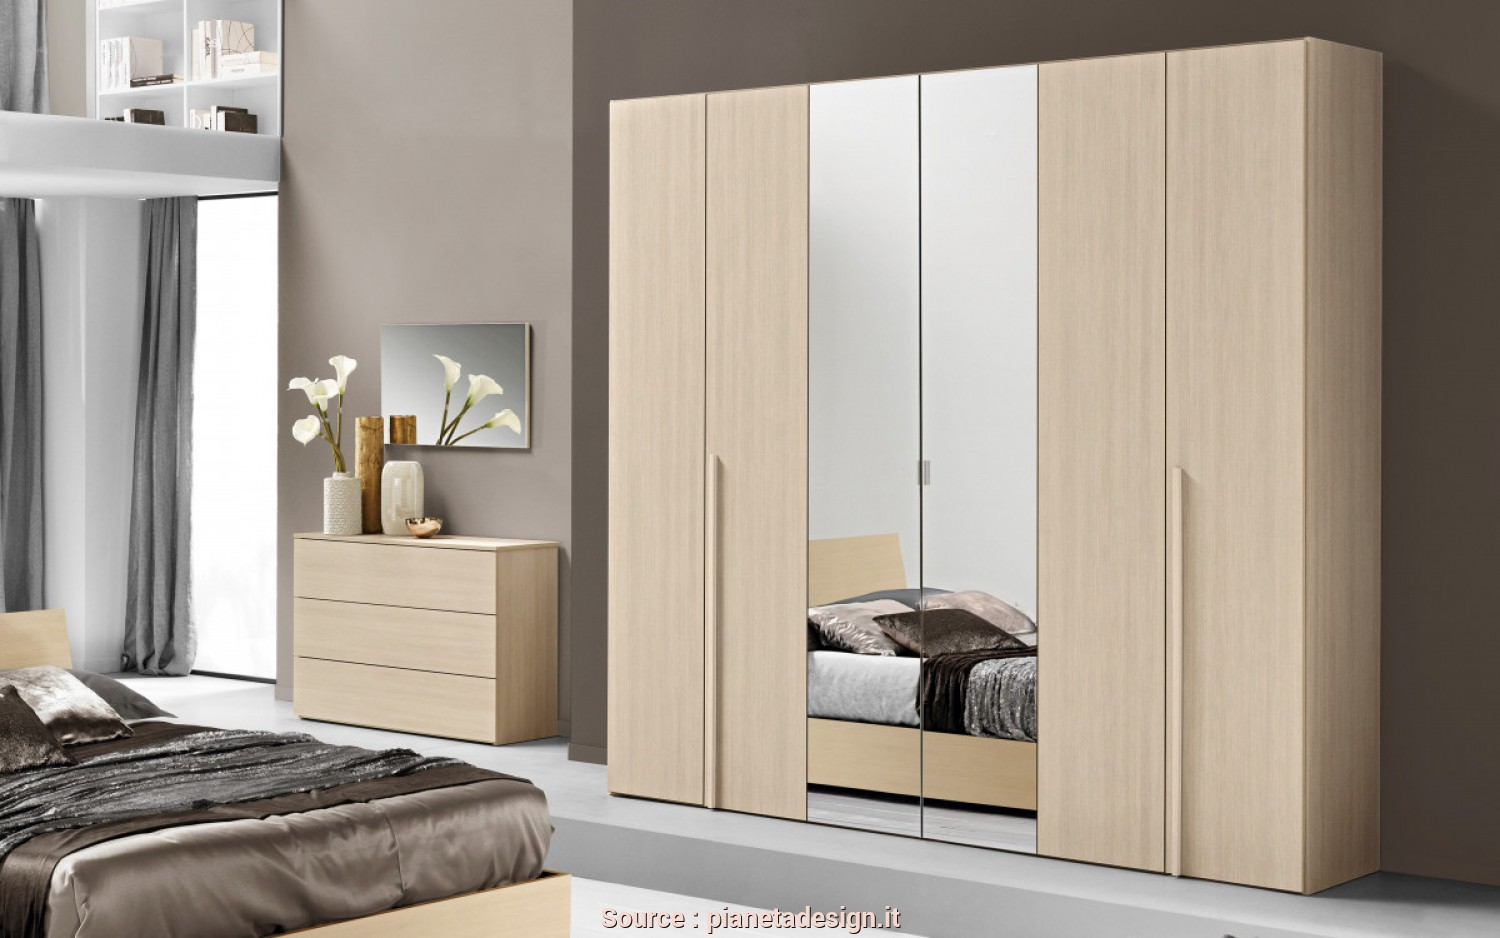 Abat Jour Camera Da Letto Mondo Convenienza, Ideale Mondo Convenienza Catalogo 2019